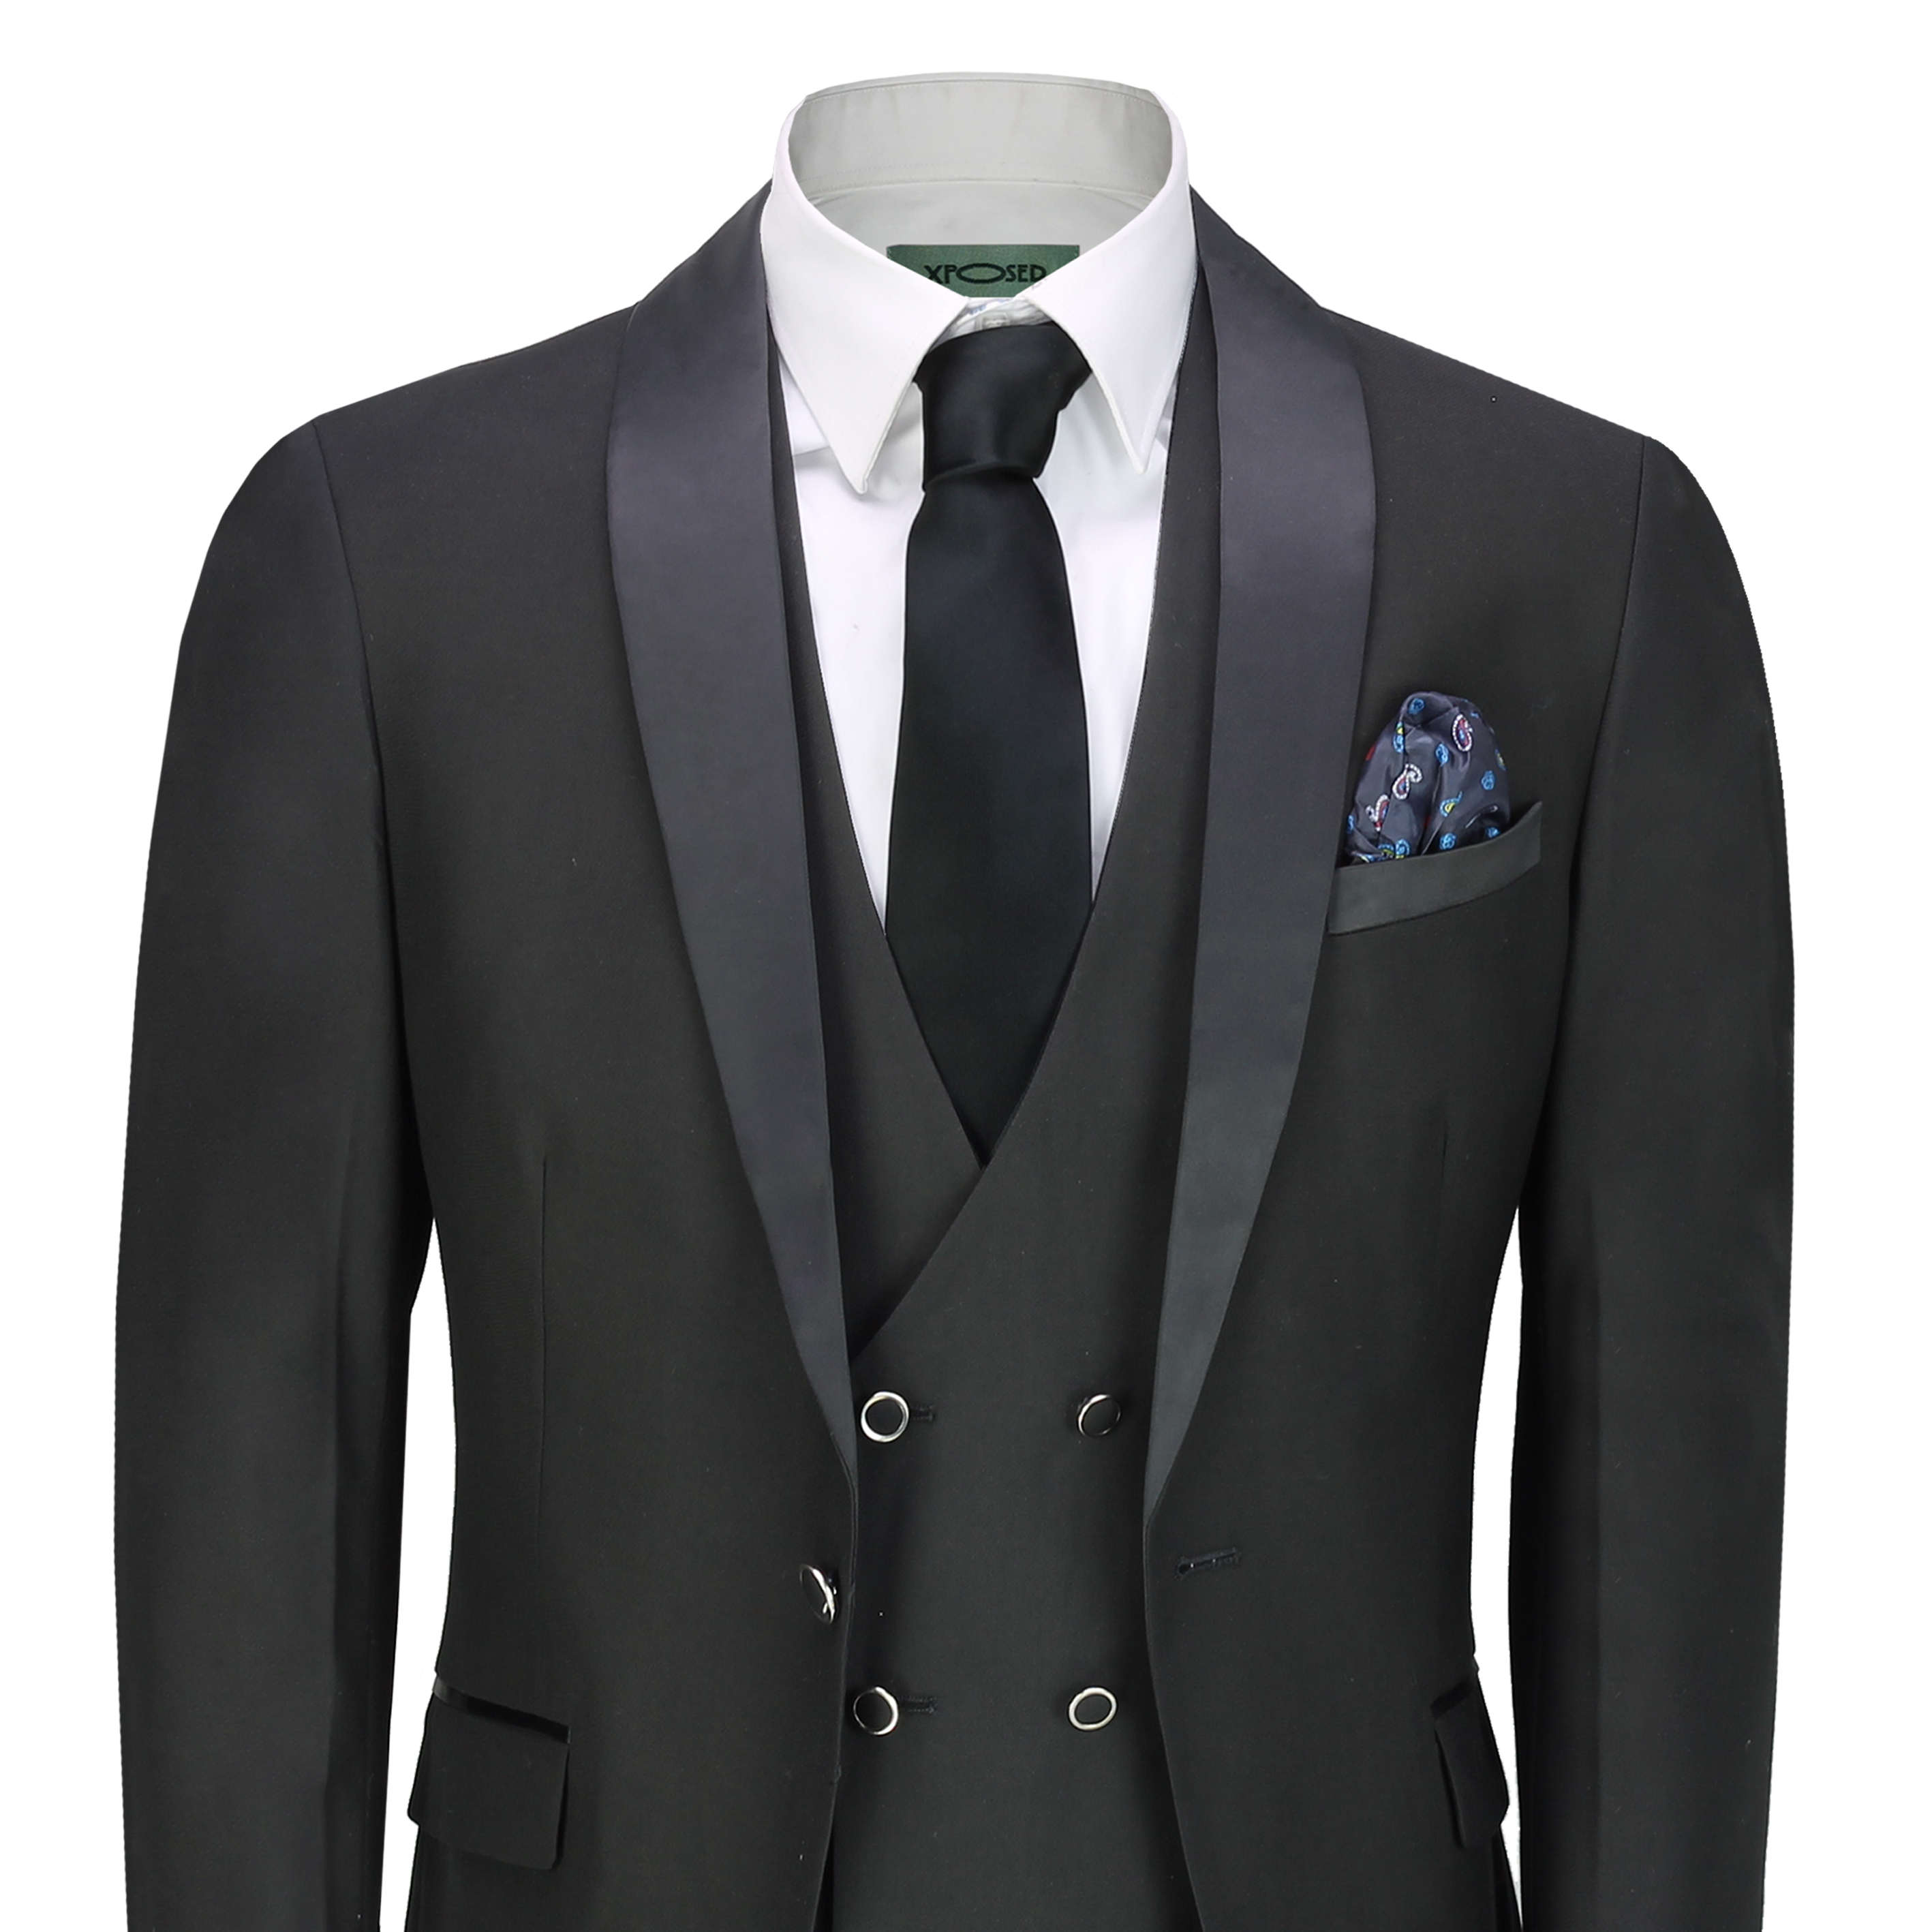 Mens Black 3 Piece Tuxedo Suit Wedding Formal Tailored Fit